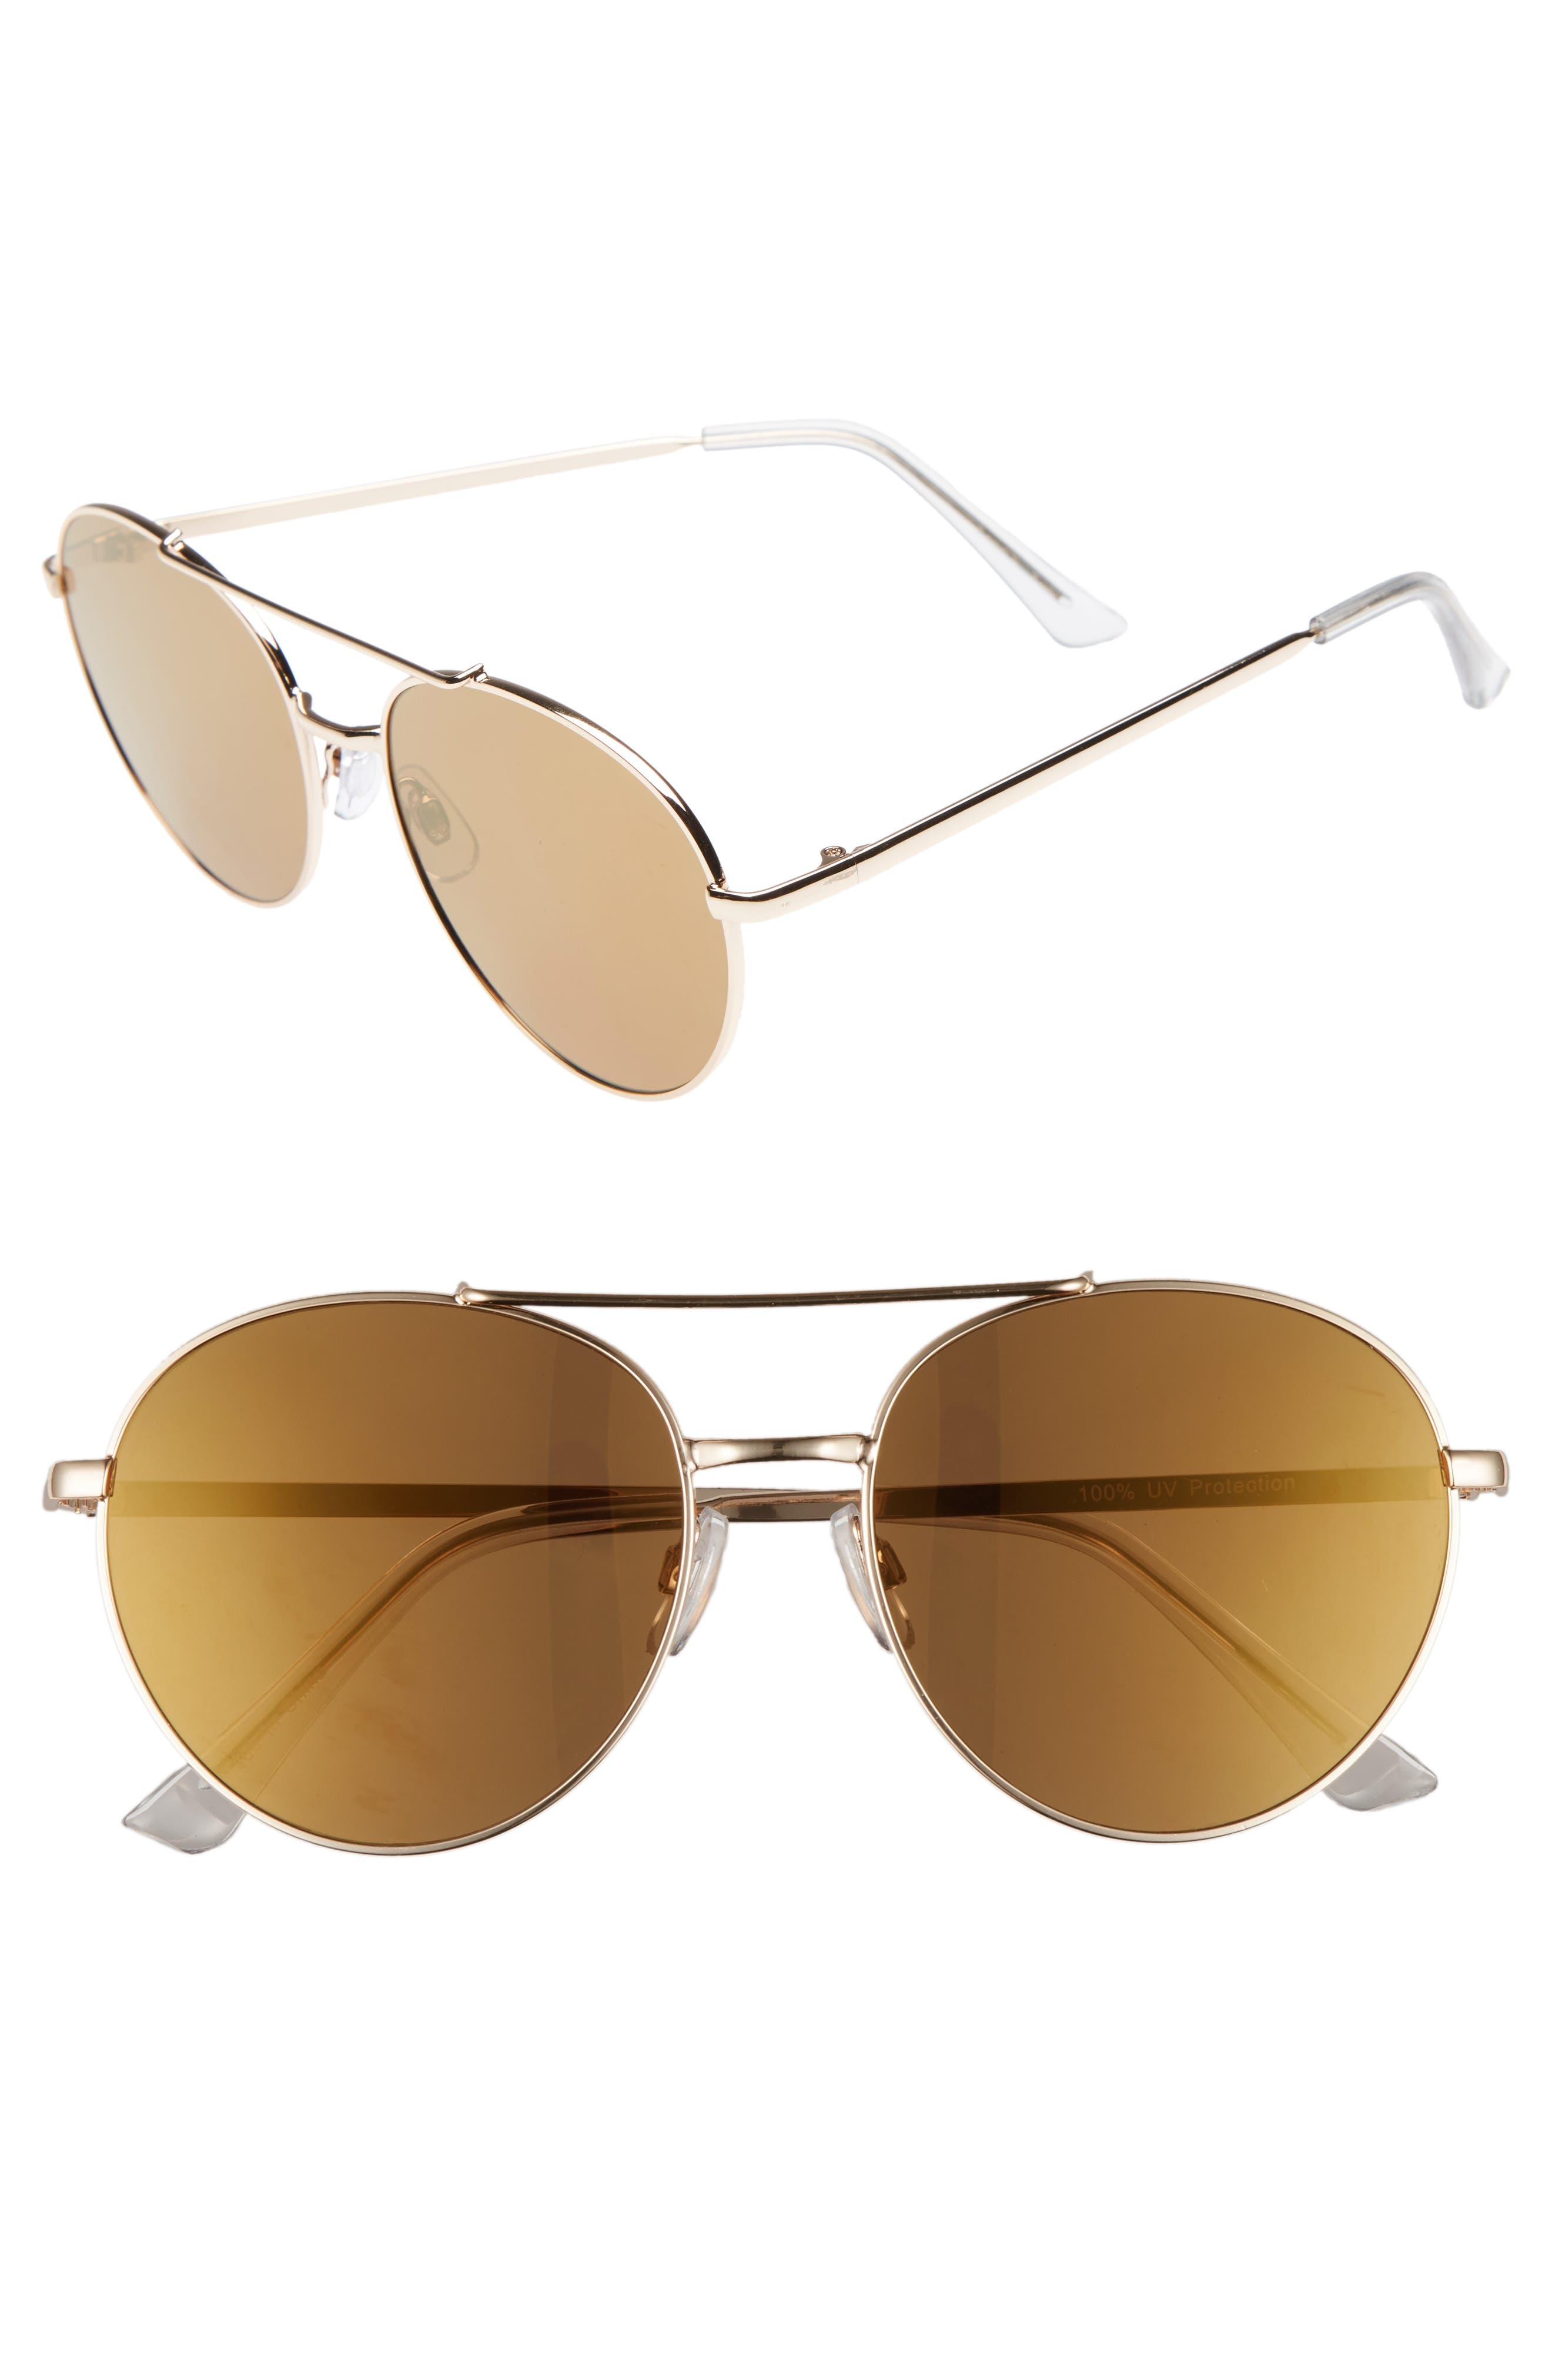 Lucky Seven 55mm Metal Aviator Sunglasses,                             Main thumbnail 1, color,                             Gold/ Gold